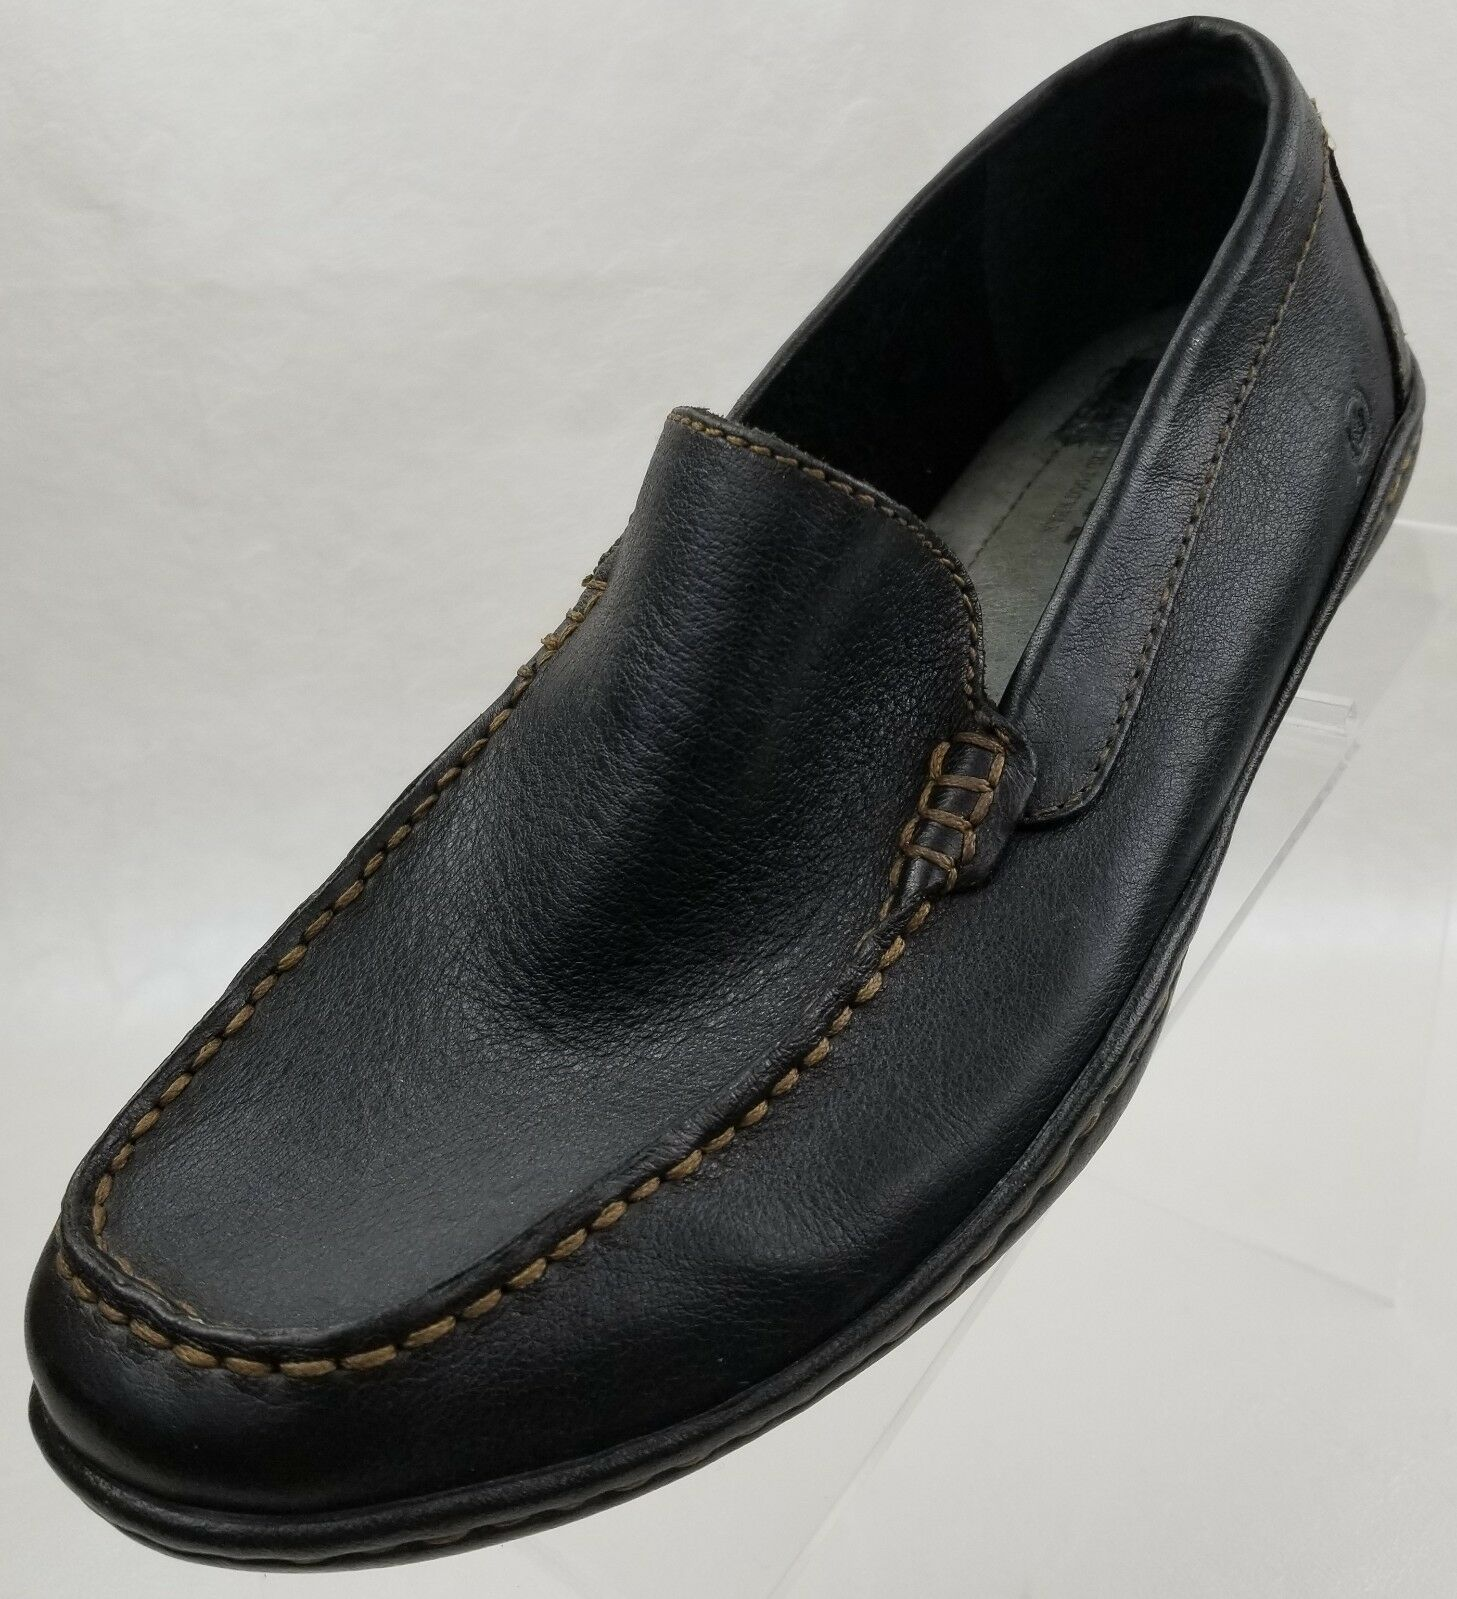 Born Lofers Moc Toe  Marronee Leather Slip on Mens scarpe Dimensione EU 41 US 8 NUOVO  in cerca di agente di vendita